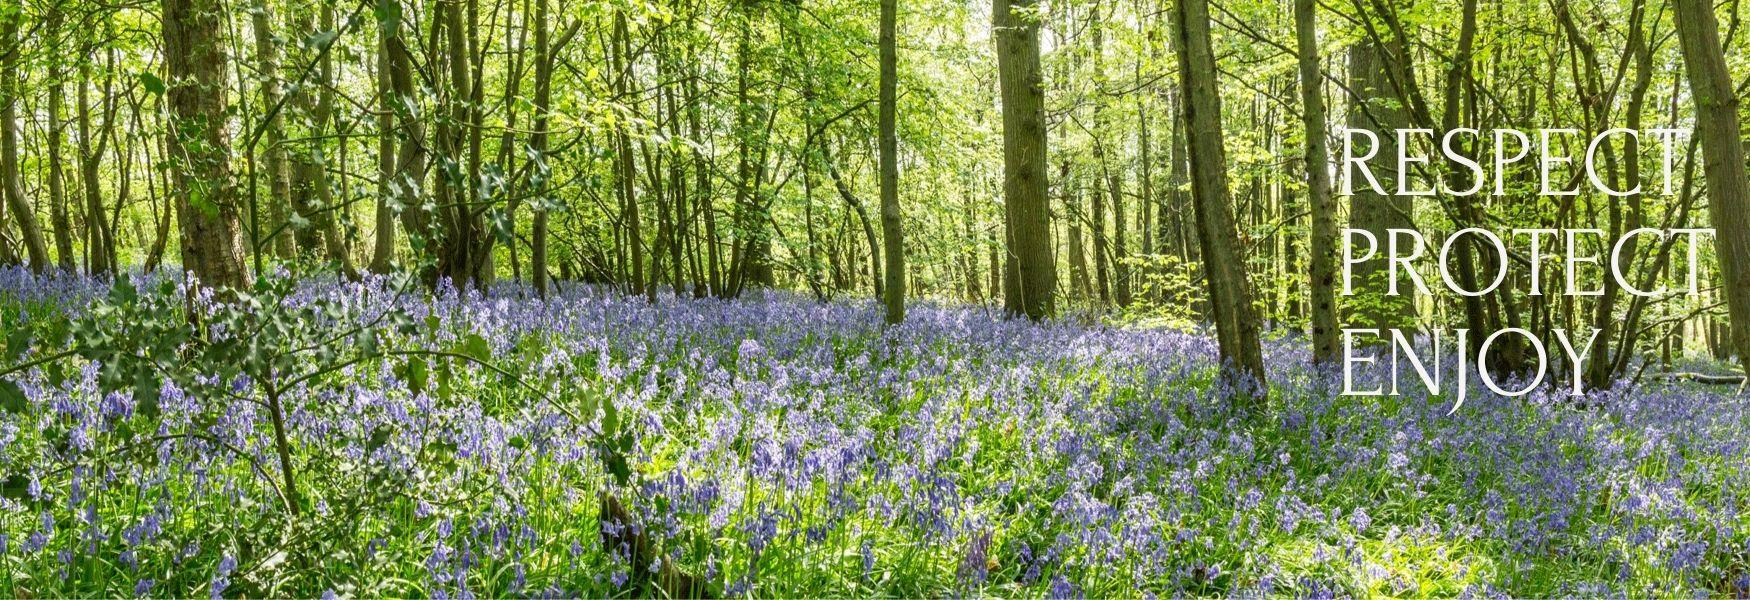 Bluebells on the Hucking Estate, part of the Woodland Trust Property at Maidstone, Kent on the North Downs